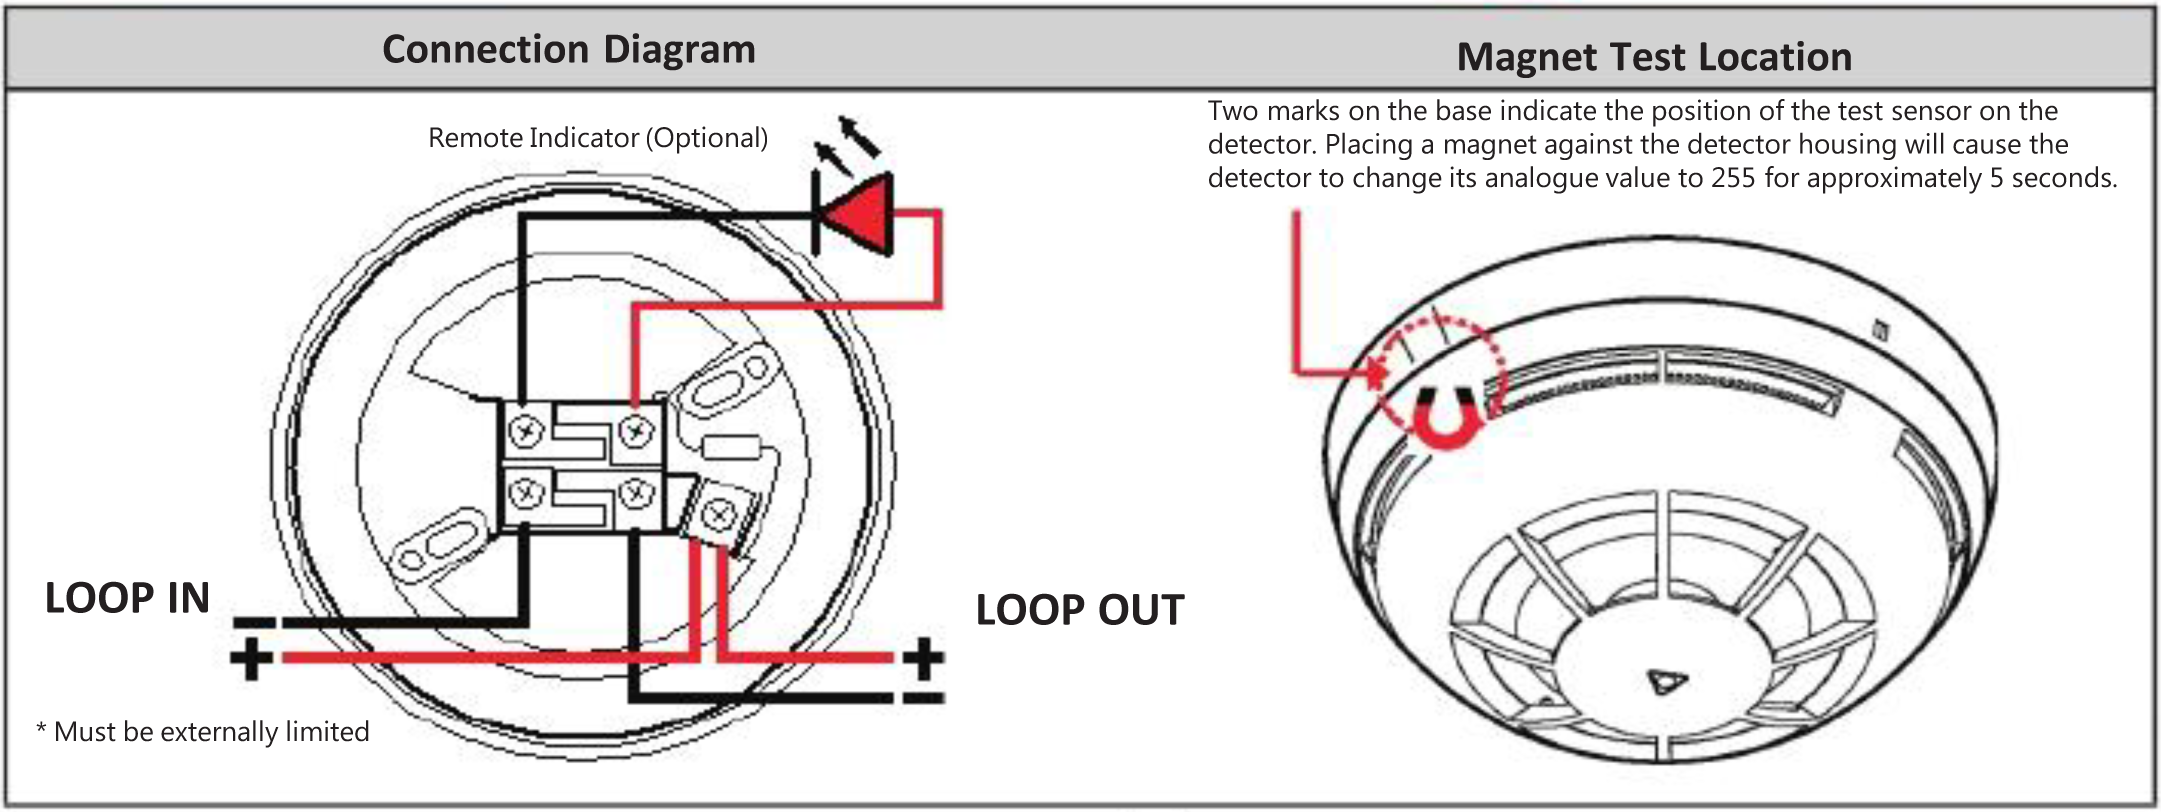 6a7d3 4 wire smoke detector wiring diagram vista 20 | wiring library hard wired smoke alarm wiring diagram free download  wiring library